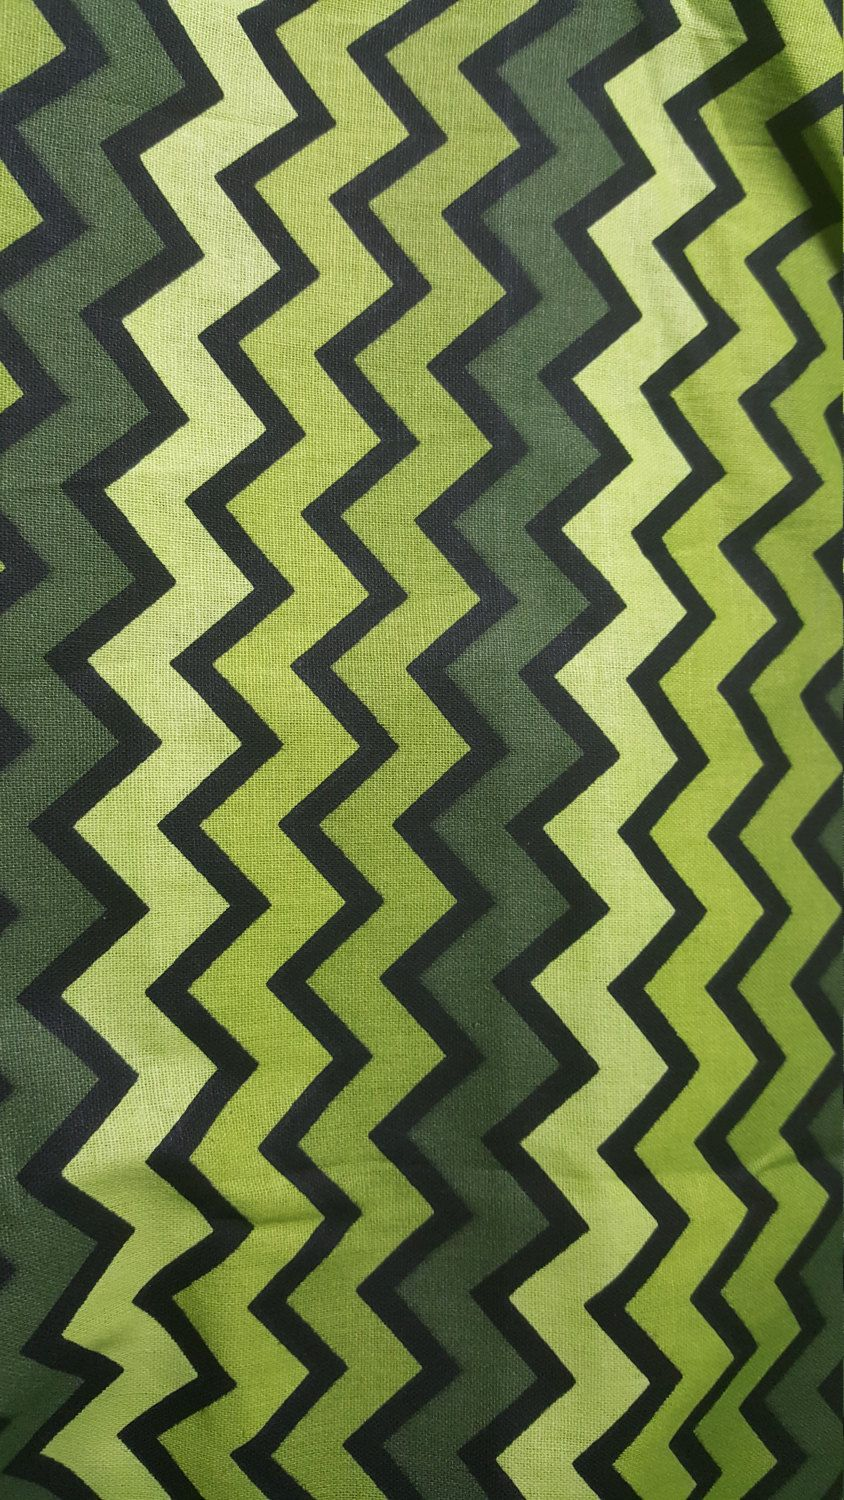 Multi-shade Lime Green, Black and Grey Chevron Jessica Odom Fabric ...